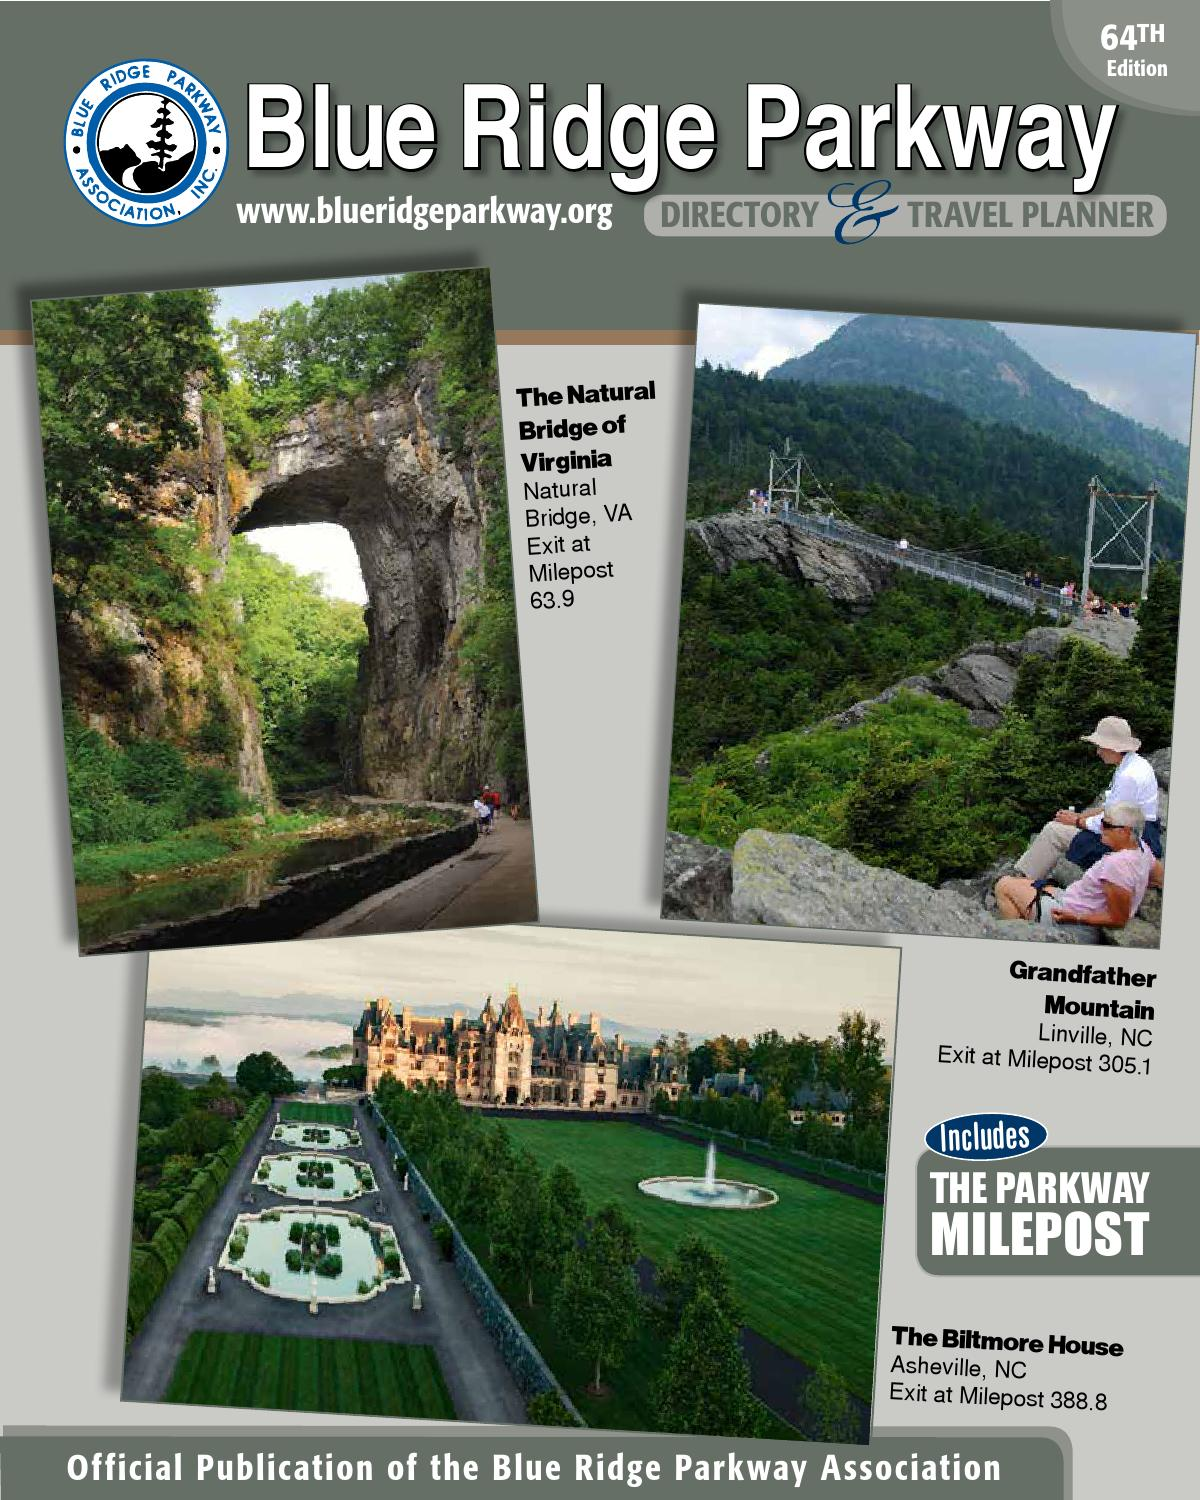 Blue Ridge Parkway Directory & Travel Planner - 64th ...